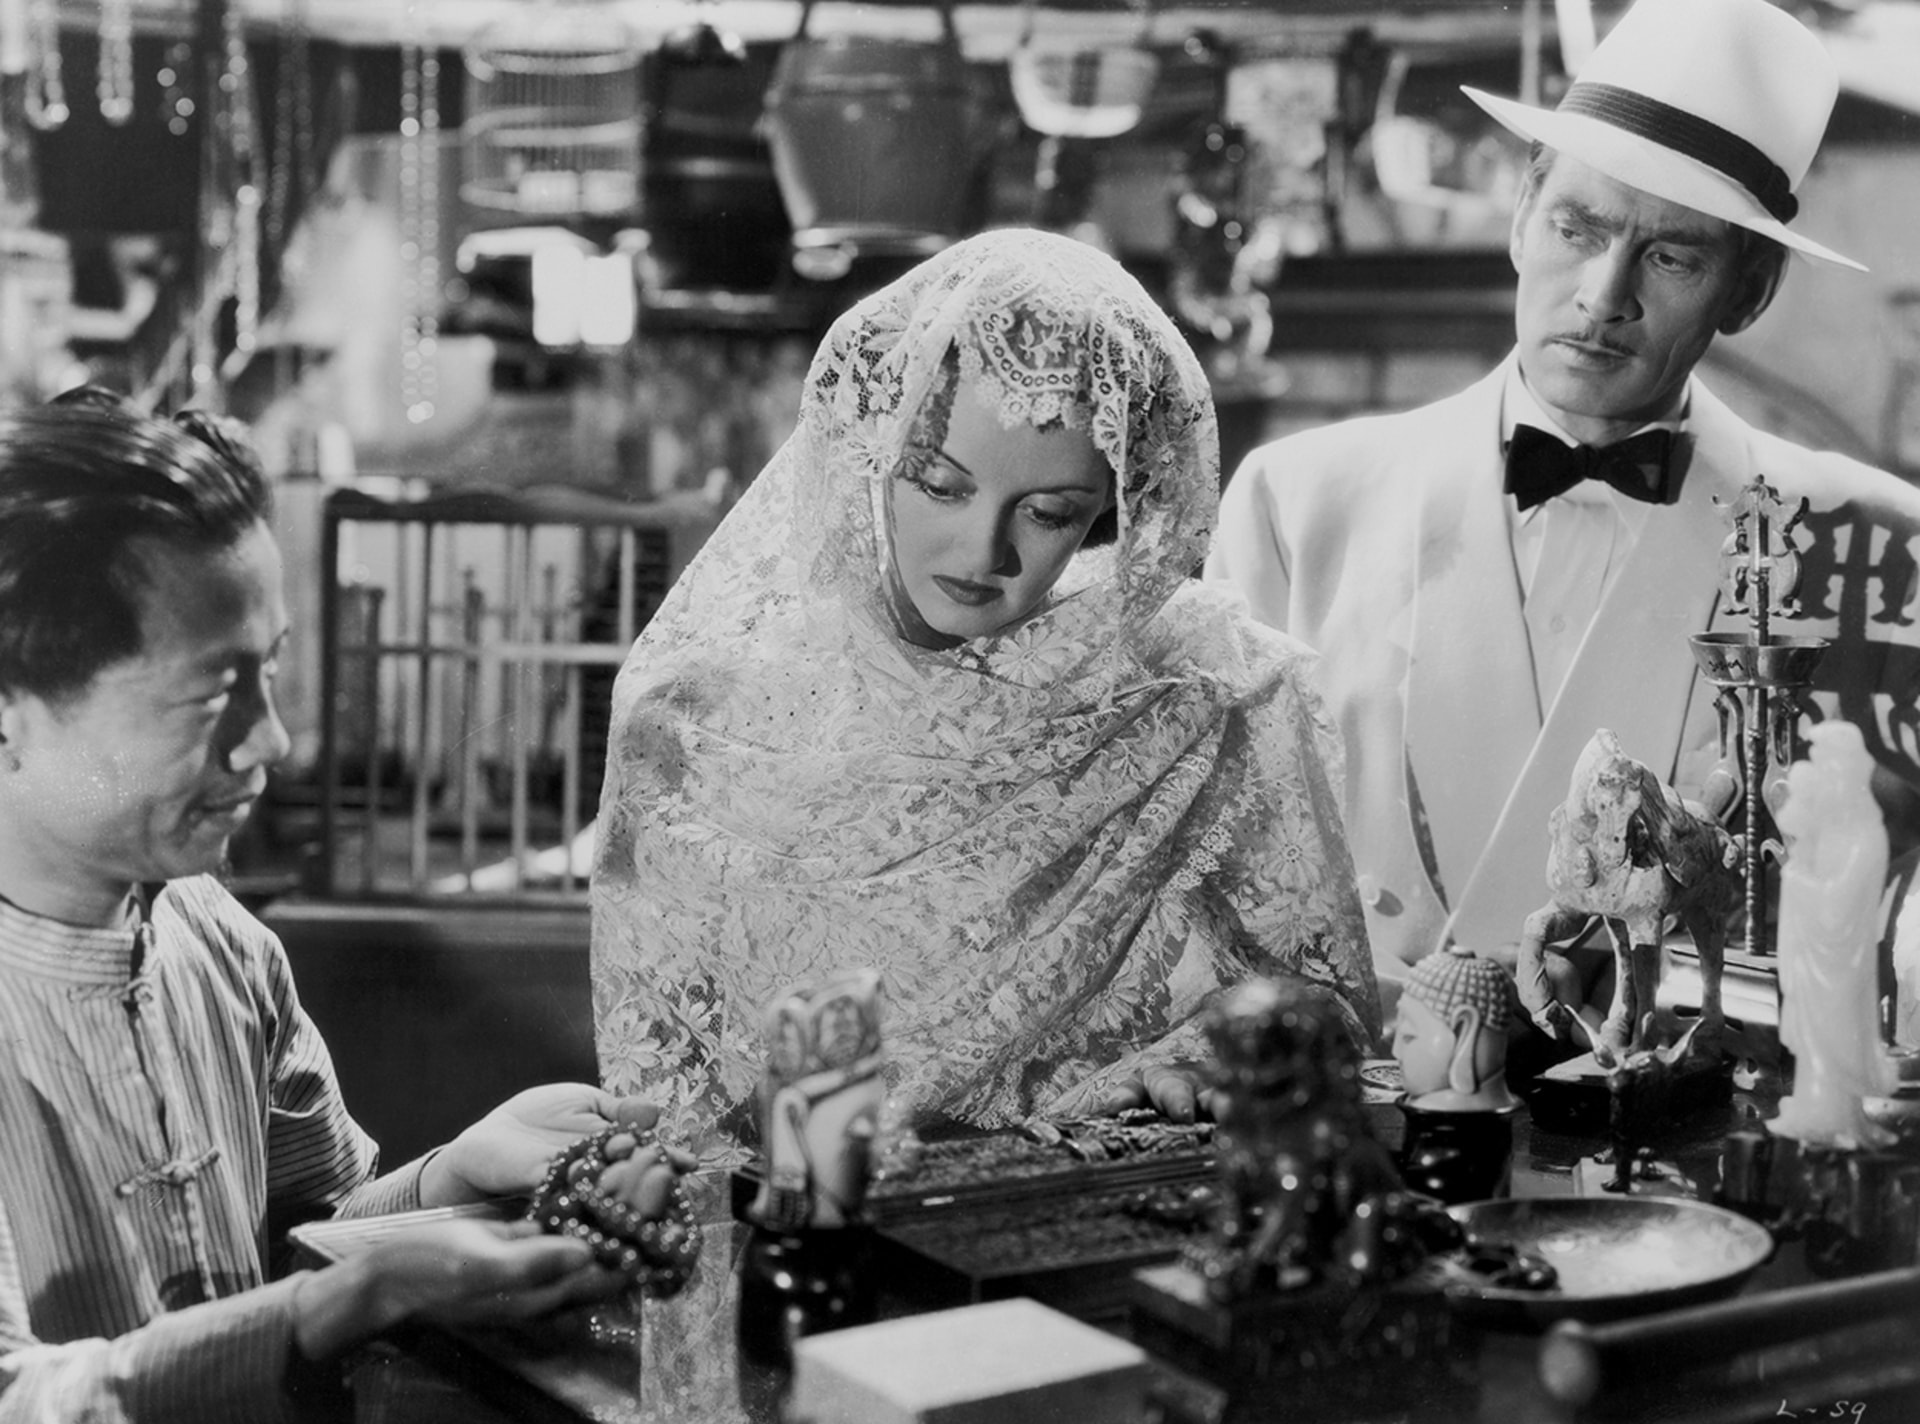 bette davis stars in the classic thriller the letter on dvd and digital